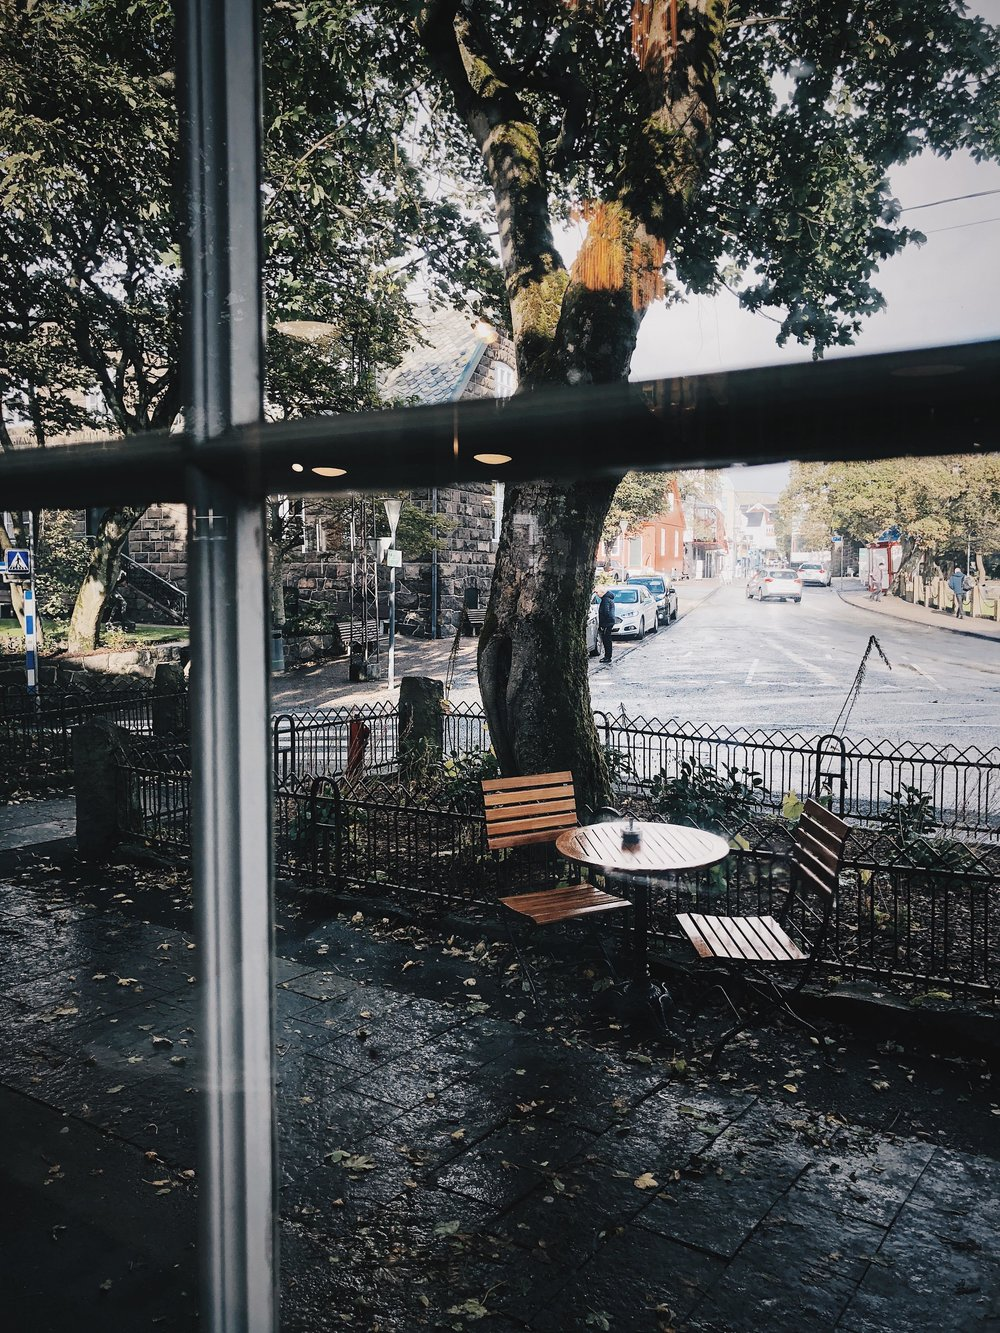 Lots of cozy coffeehouses to take a break, and enjoy the city, staring through the windows.